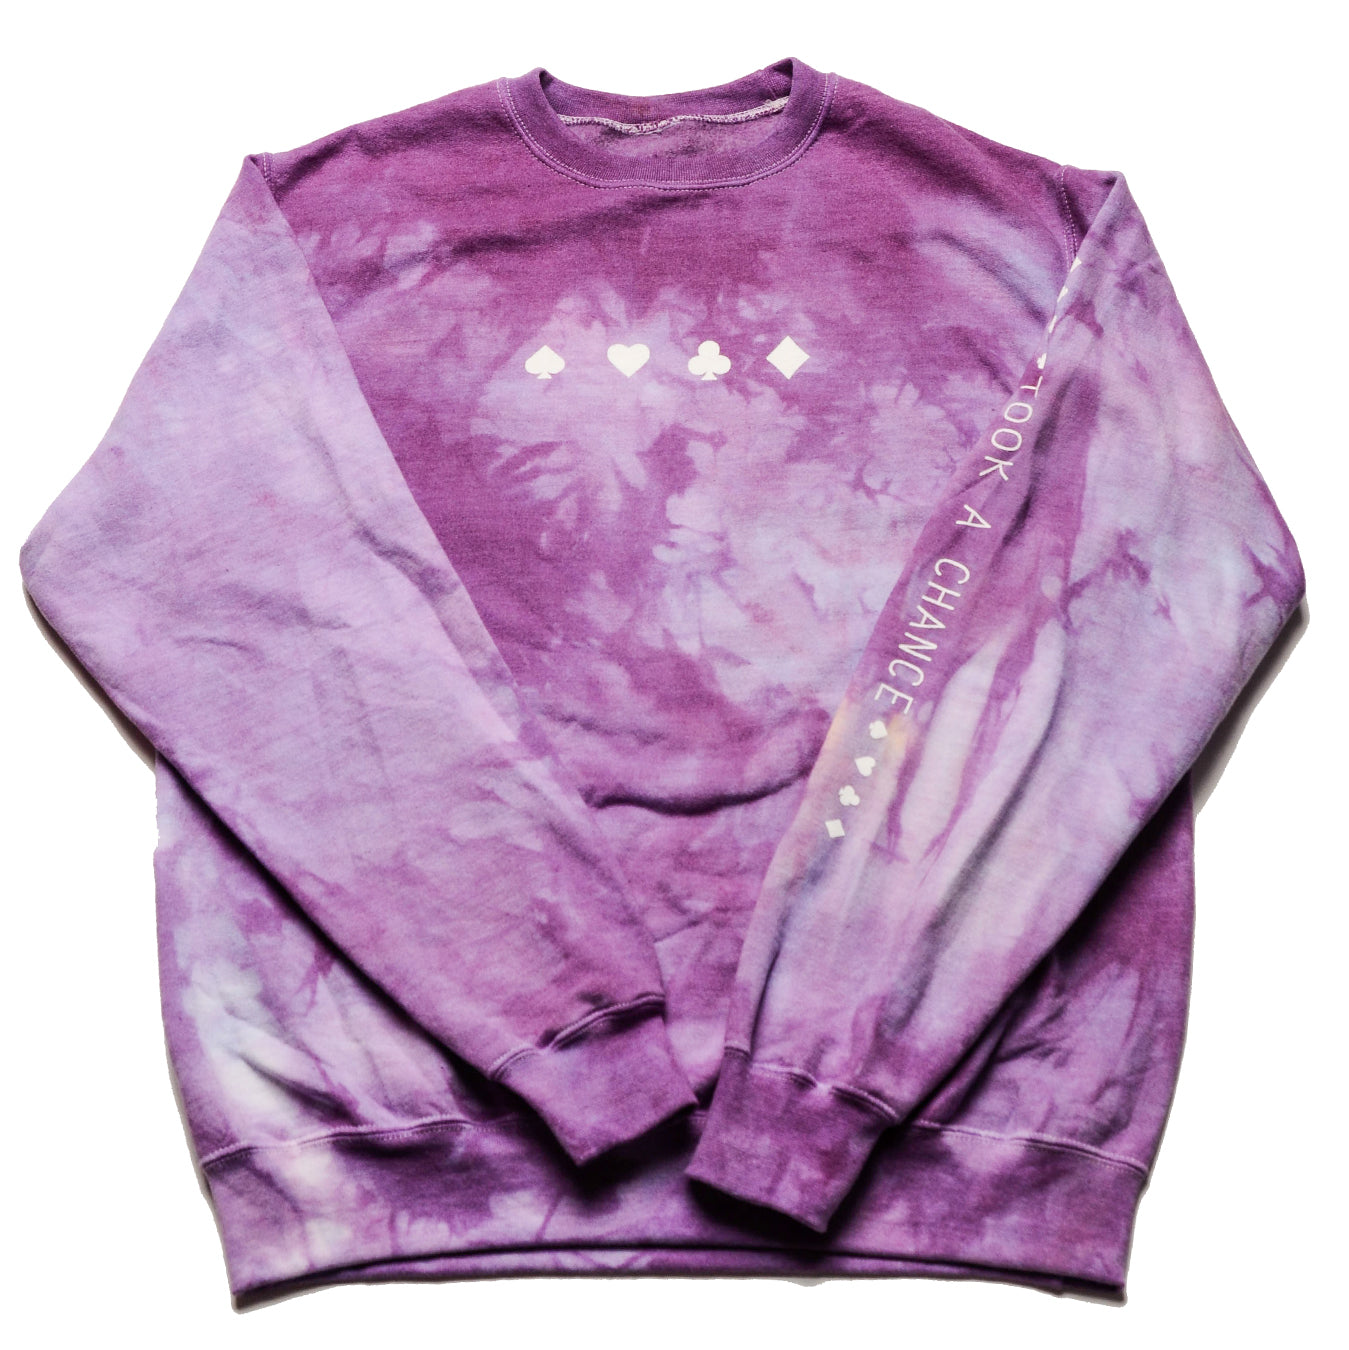 Royale Dyed Took A Chance Crewneck